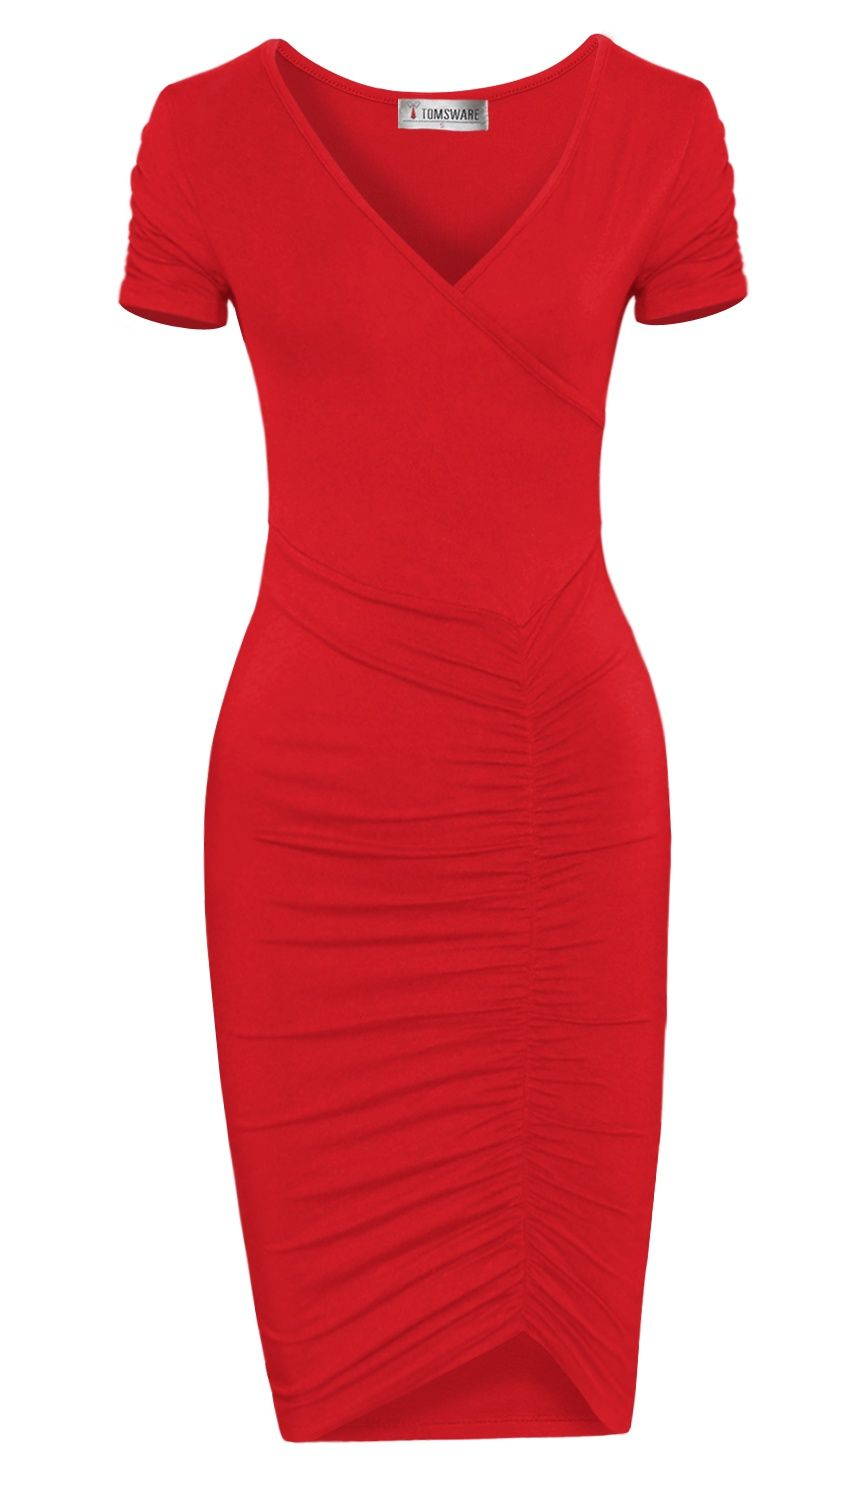 Tam Ware Tam Ware Women Fashionable V Neck Short Sleeve Ruched Dress Walmart Com In 2021 Fashion Red Dresses Classy Ruched Dress [ 1499 x 862 Pixel ]